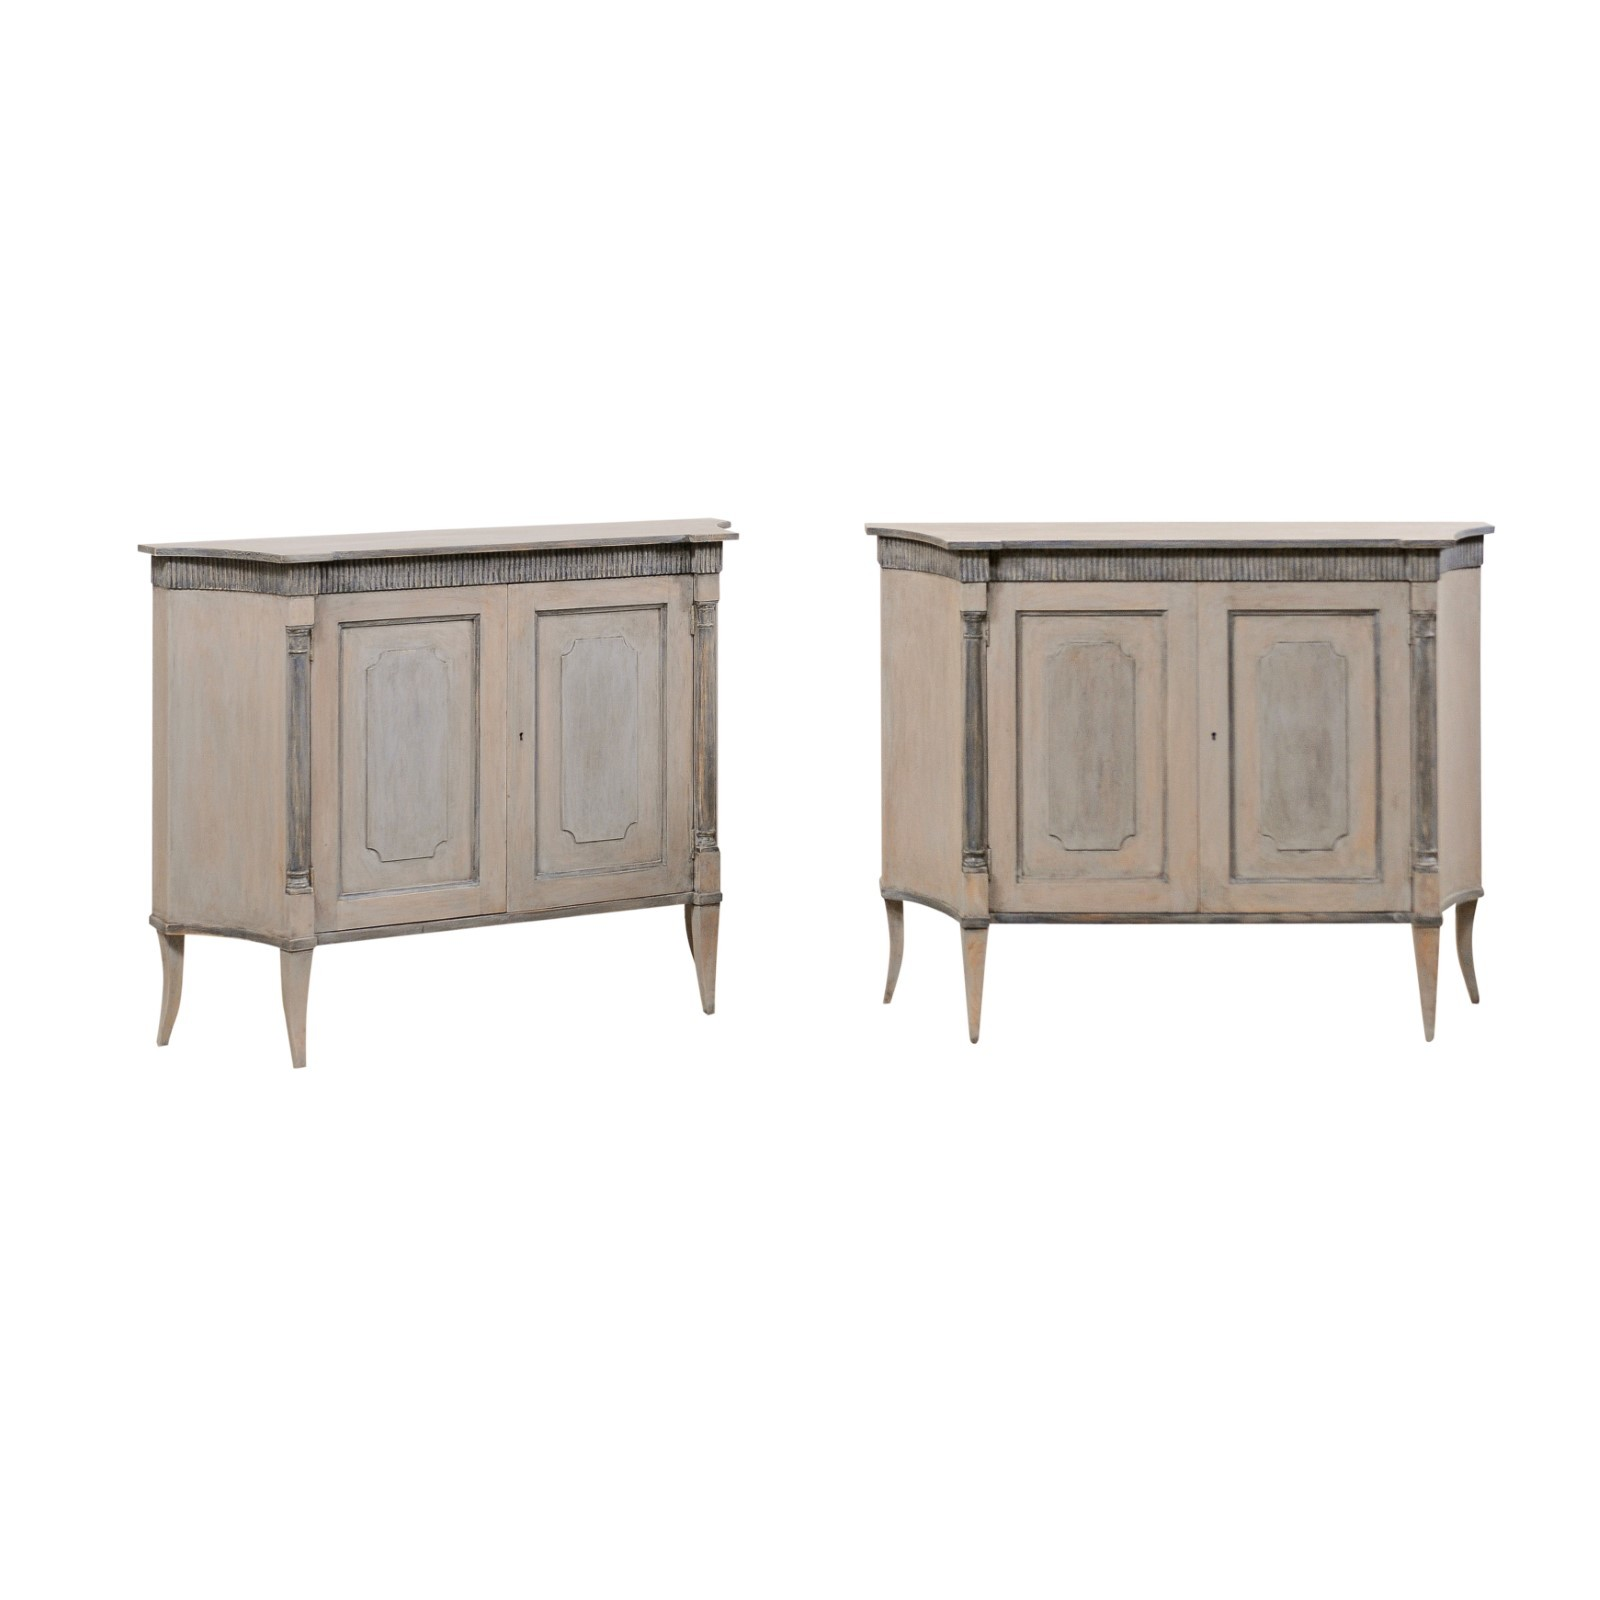 Pair of French Style Cabinets on Sabre Legs